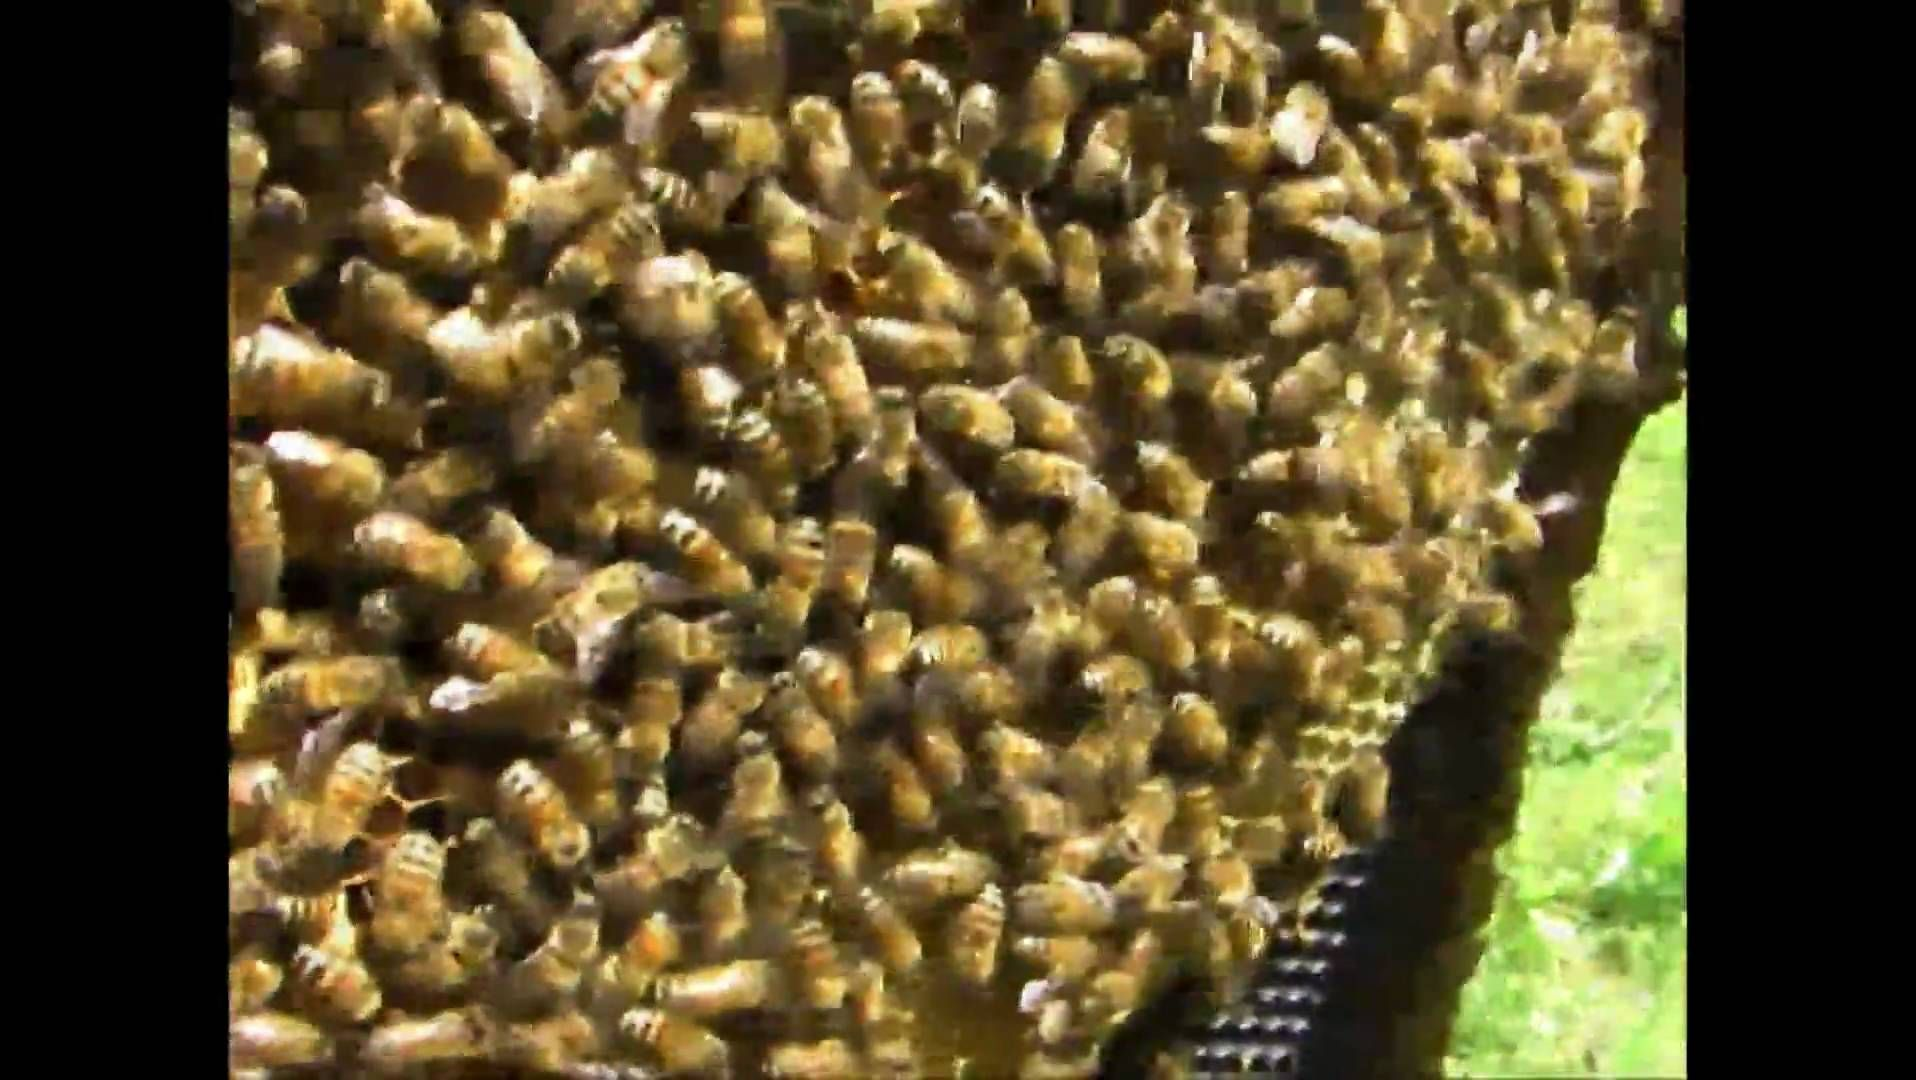 4cfb062996303f8712813a459245d030 - How To Get Rid Of Small Hive Beetle Larvae